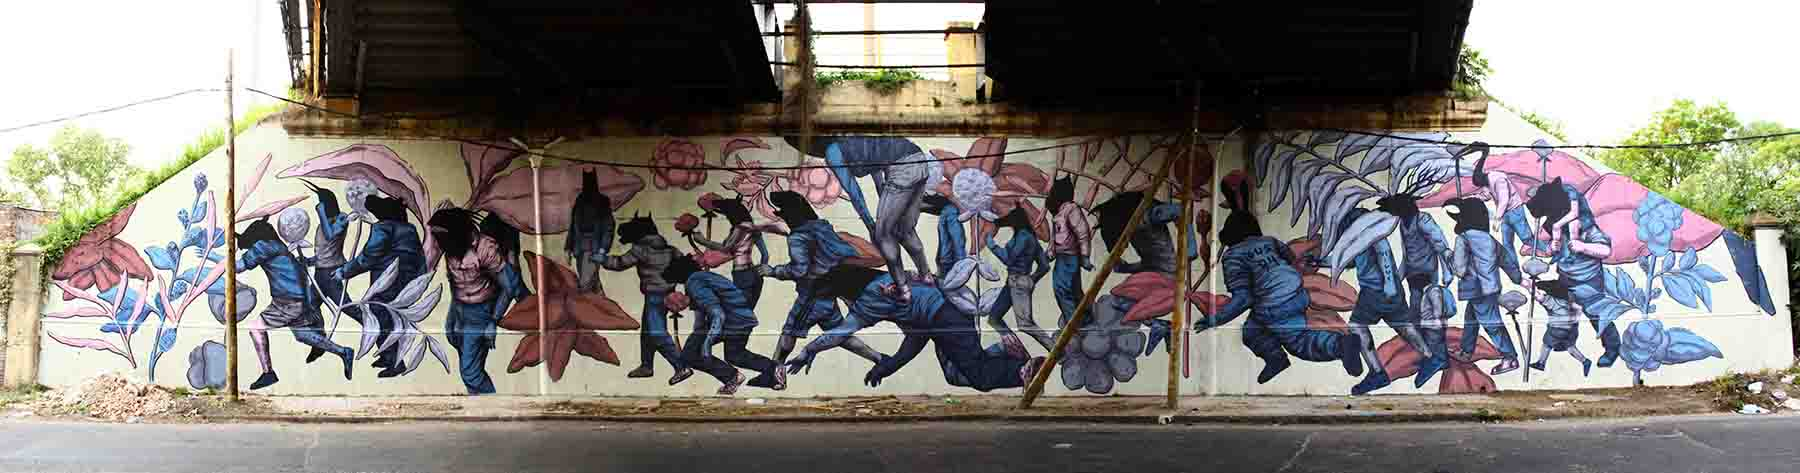 jaz-pastel-new-mural-in-buenos-aires-05